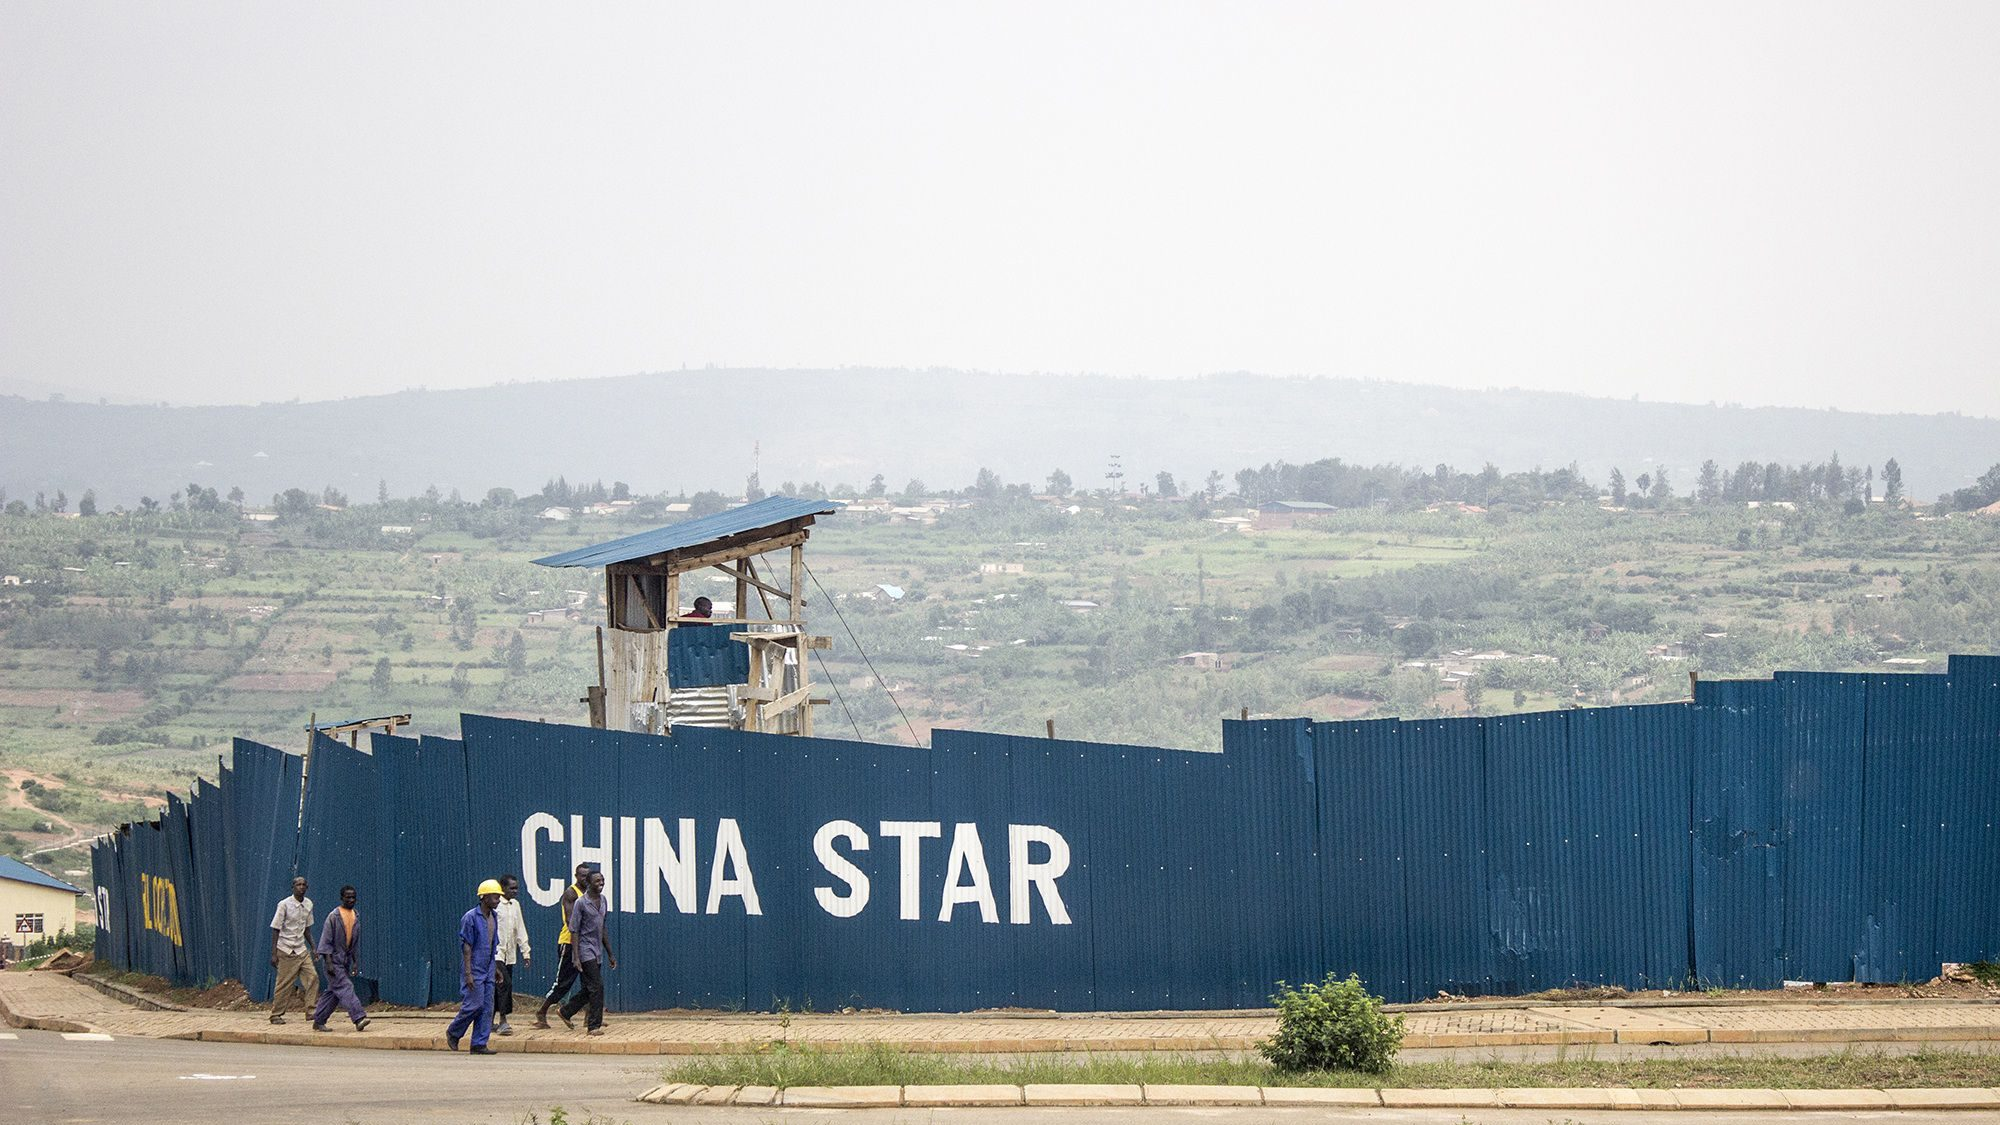 A Chinese construction company's building site in a special economic zone in Kigali, Rwanda.